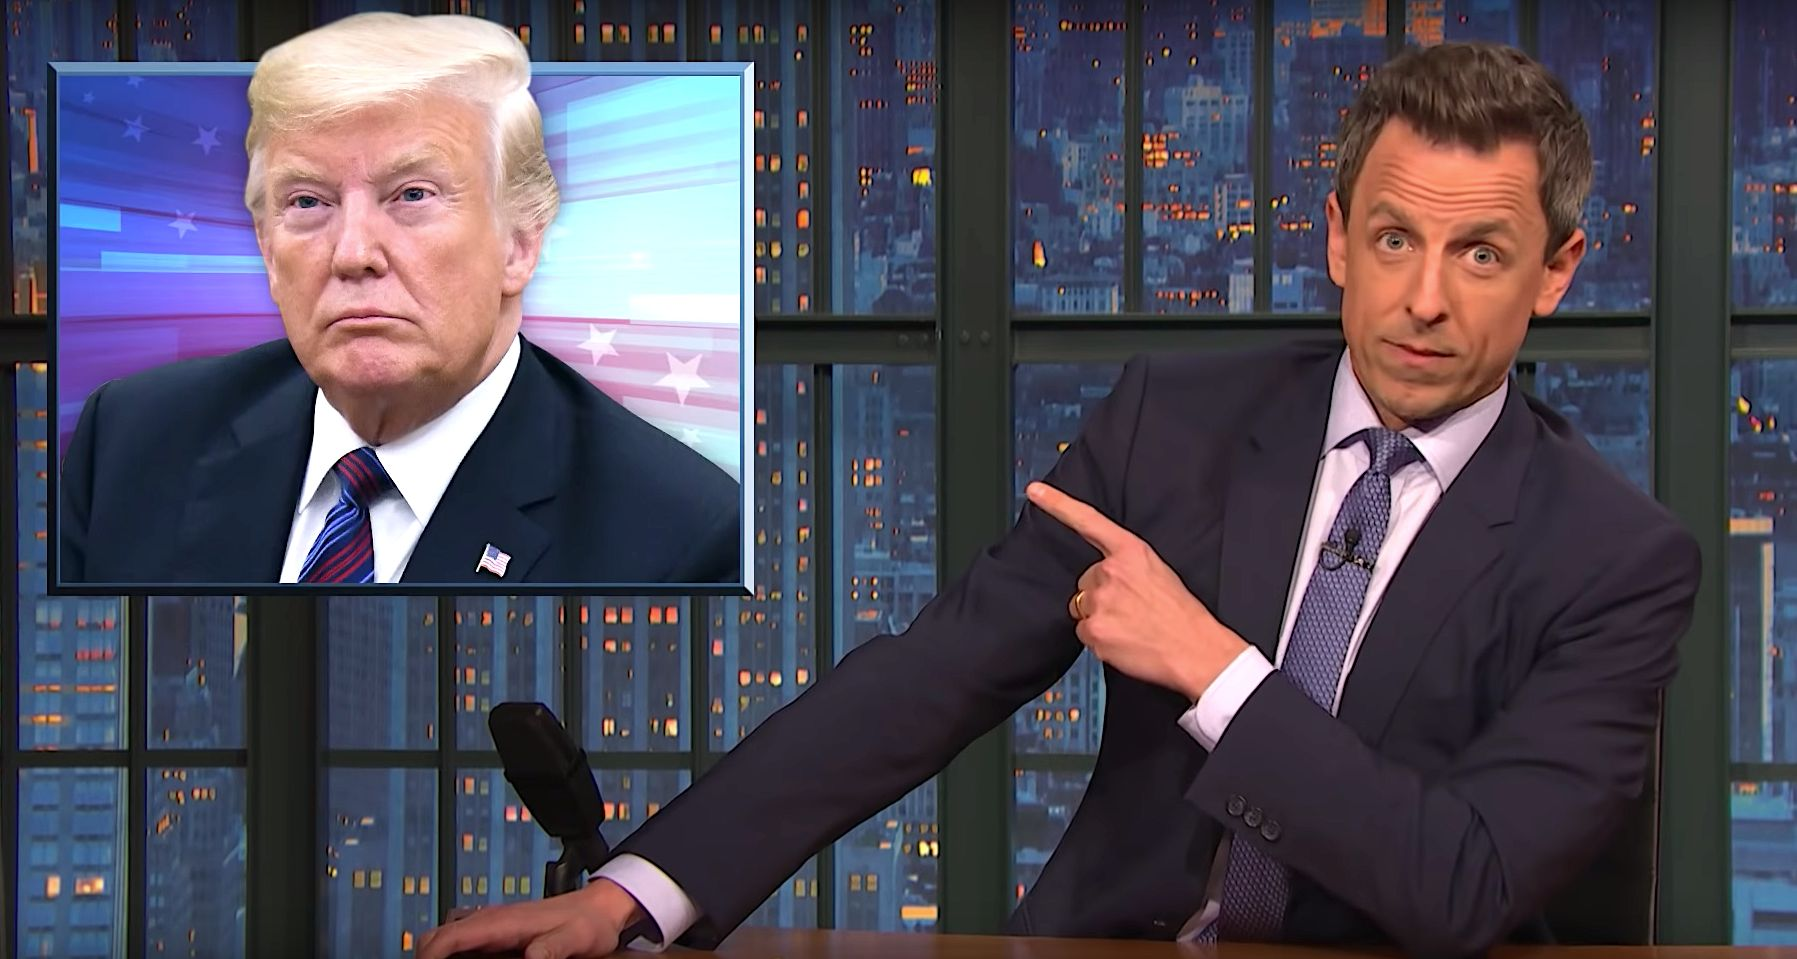 Donald Trump and Seth Meyers